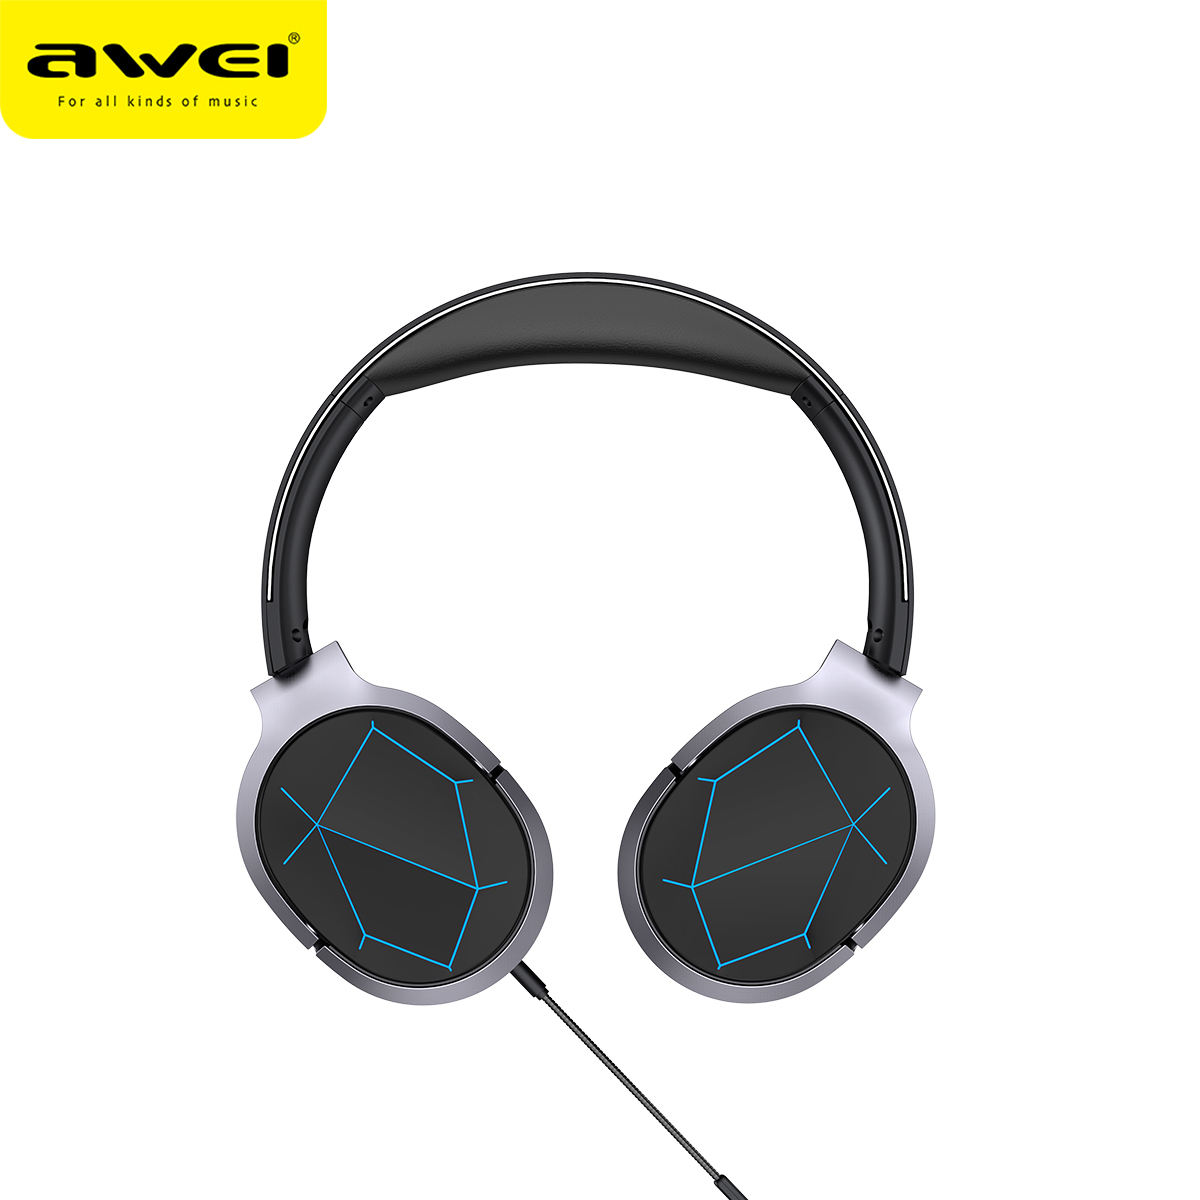 Awei A799BL head-mounted gaming headset NEW ARRIVAL WIRELESS WATERPROOF BLUETOOTH HEADPHONES